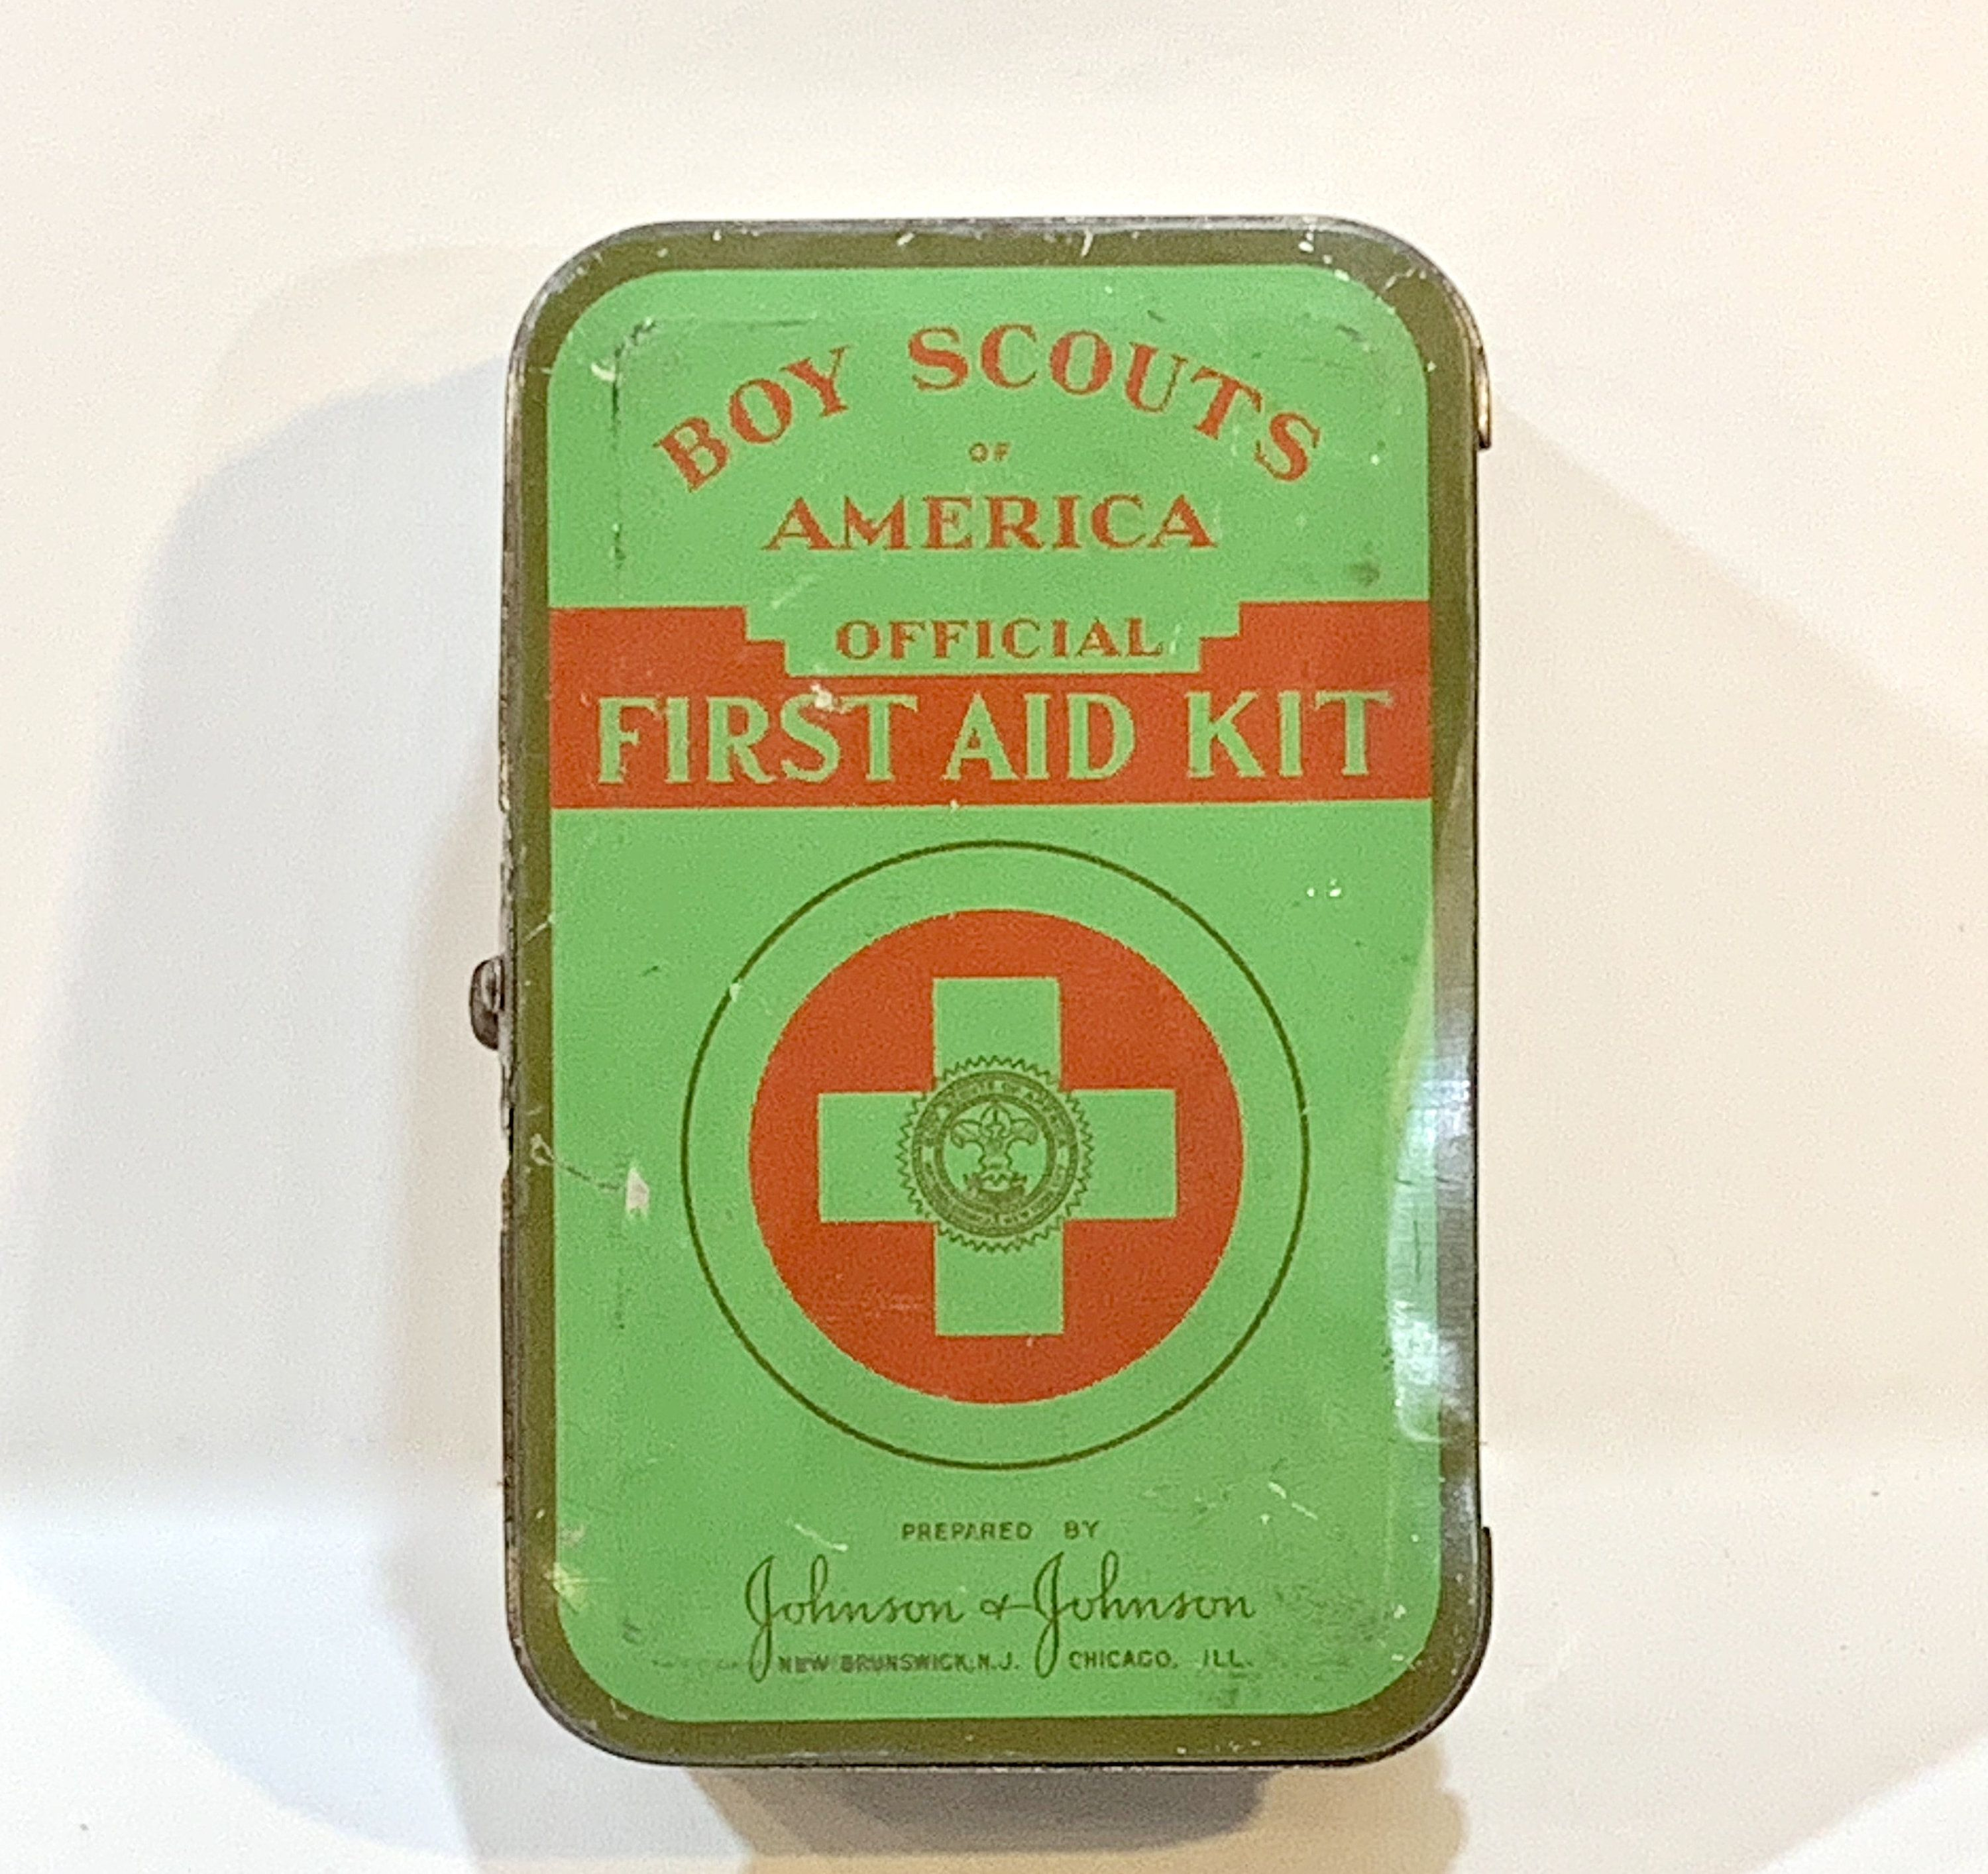 Vintage Boy Scouts of America, Official First Aid Kit, Johnson Johnson, Mid Century 1940s, Collectible Tin #firstaid